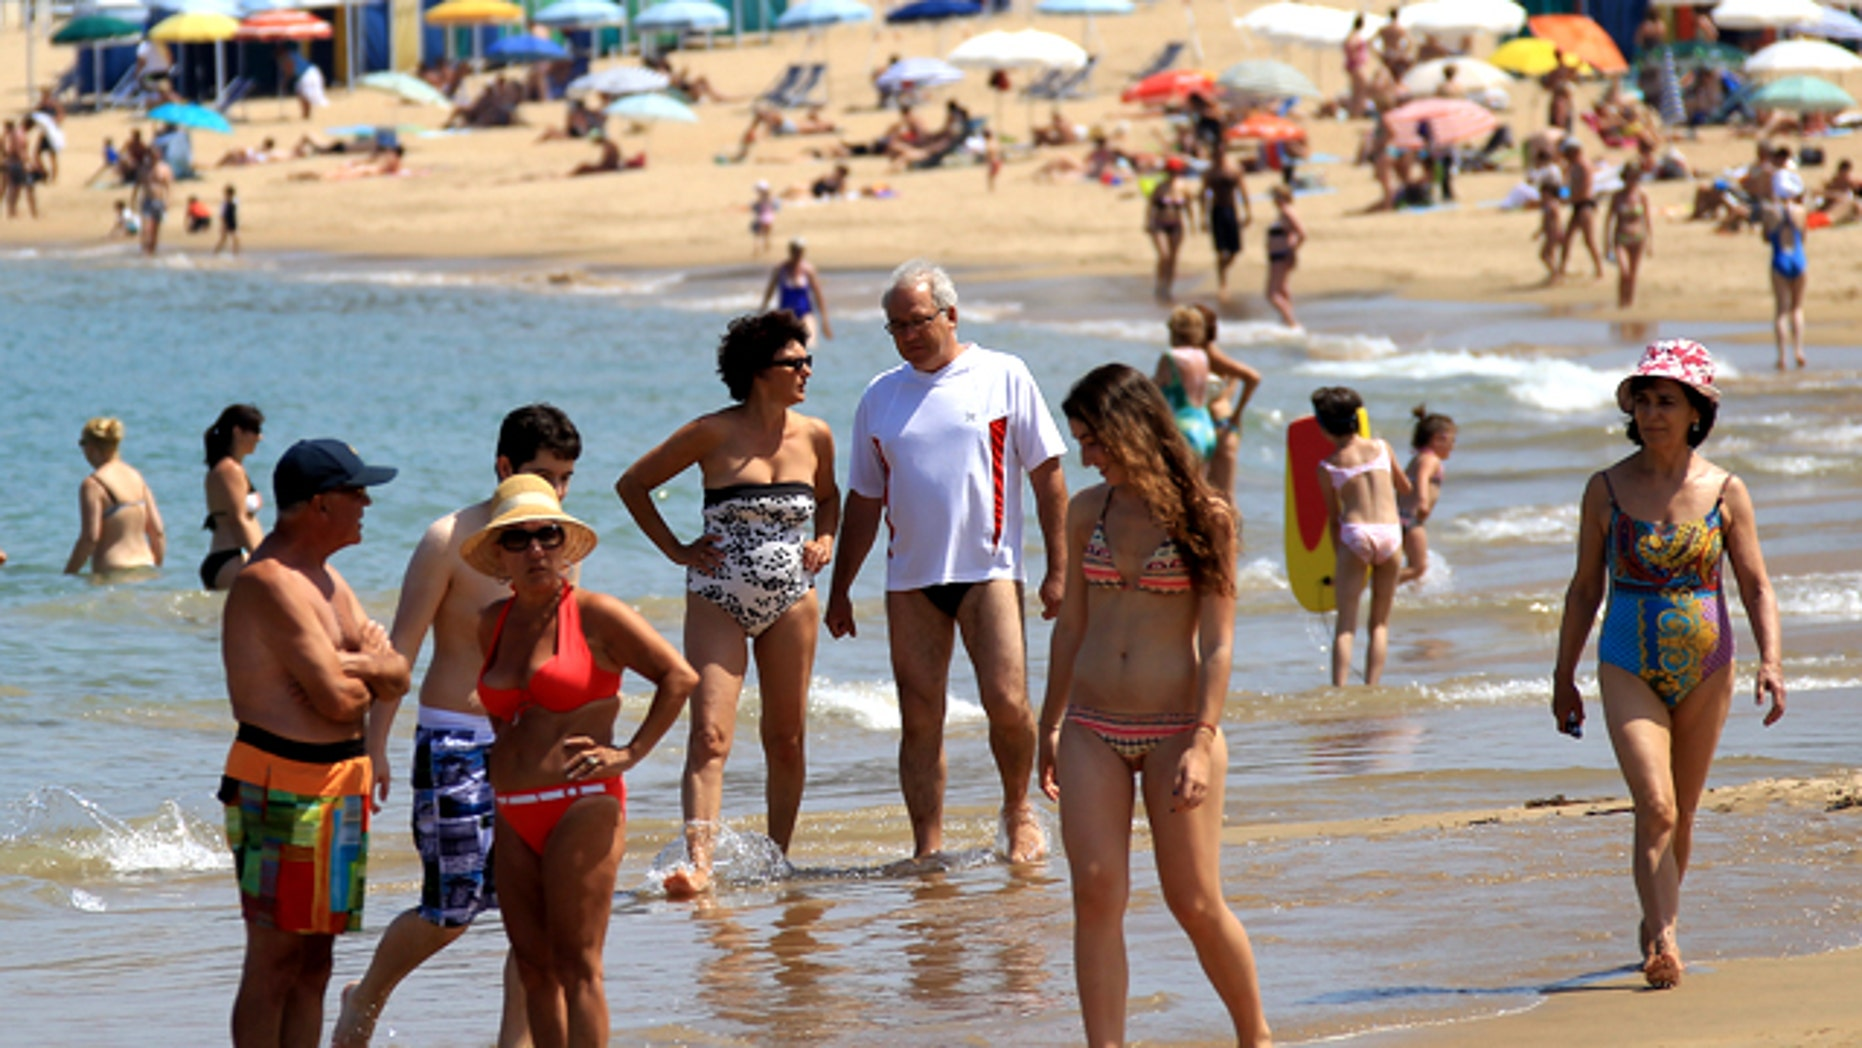 People refresh themselves at Saint Jean de Luz' beach, southwestern France, where the temperature rose to 38 degrees Celsius (100.4 degrees Fahrenheit) Monday, June 27, 2011.